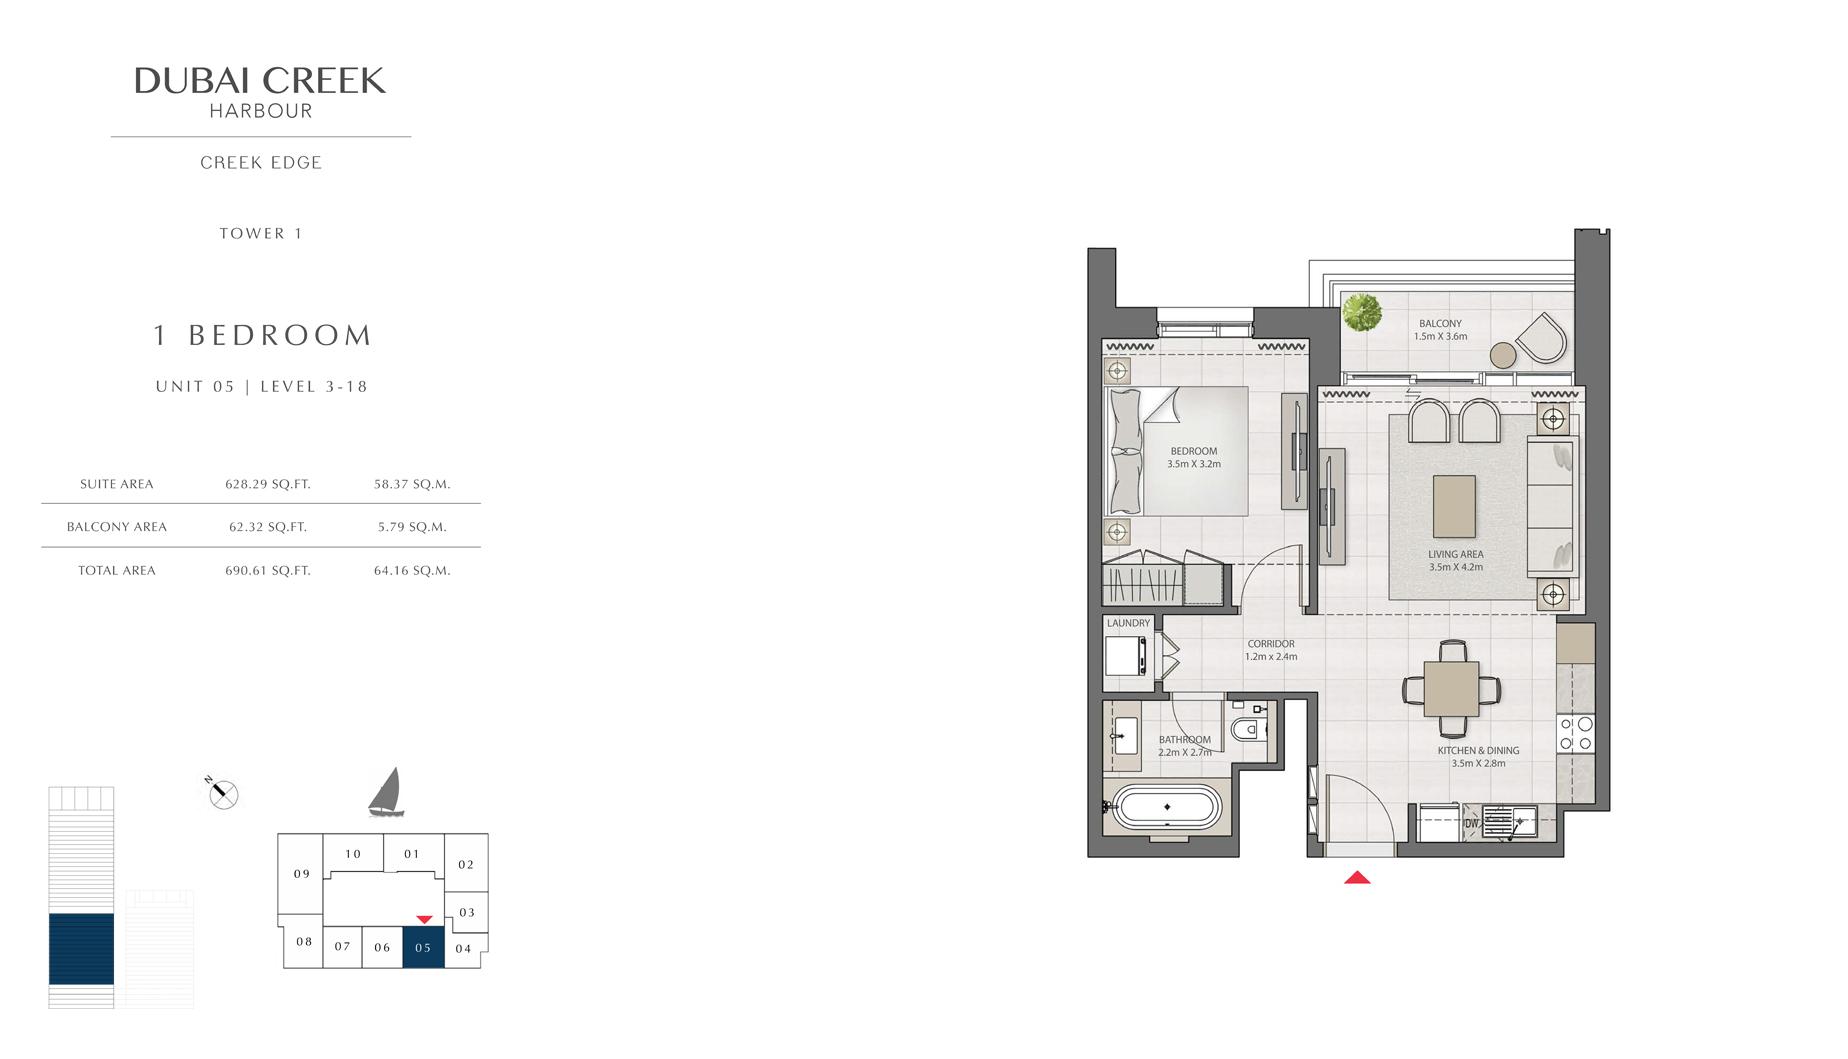 1 Bedroom Tower 1 Unit 05 Level 3-18  Size 690 sq.ft